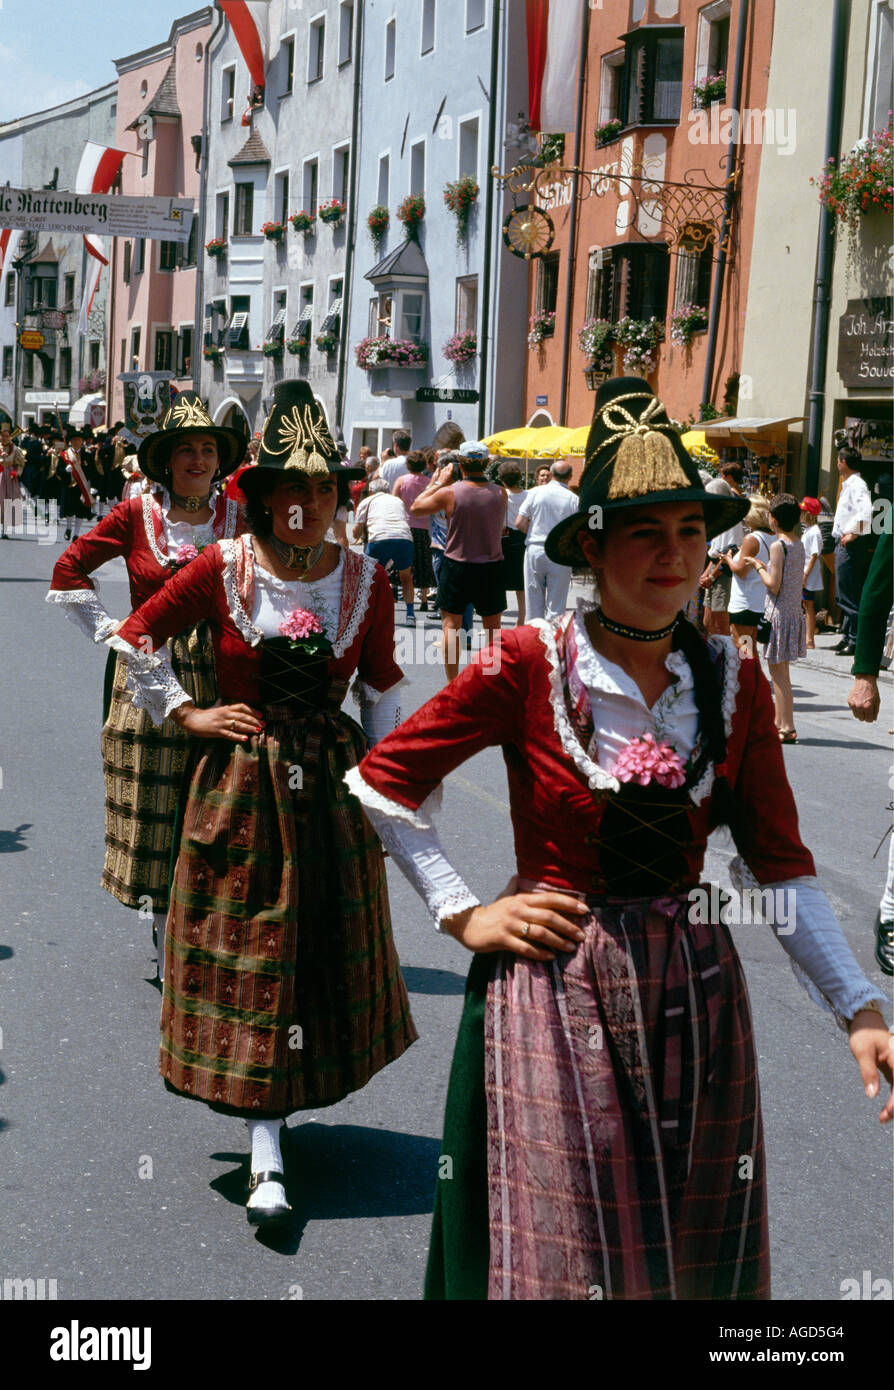 Traditionally dressed musicians and dancers in the street at the Musikfest in the small town of Rattenburg population 600 which retains a uniquely medieval appearance - Stock Image